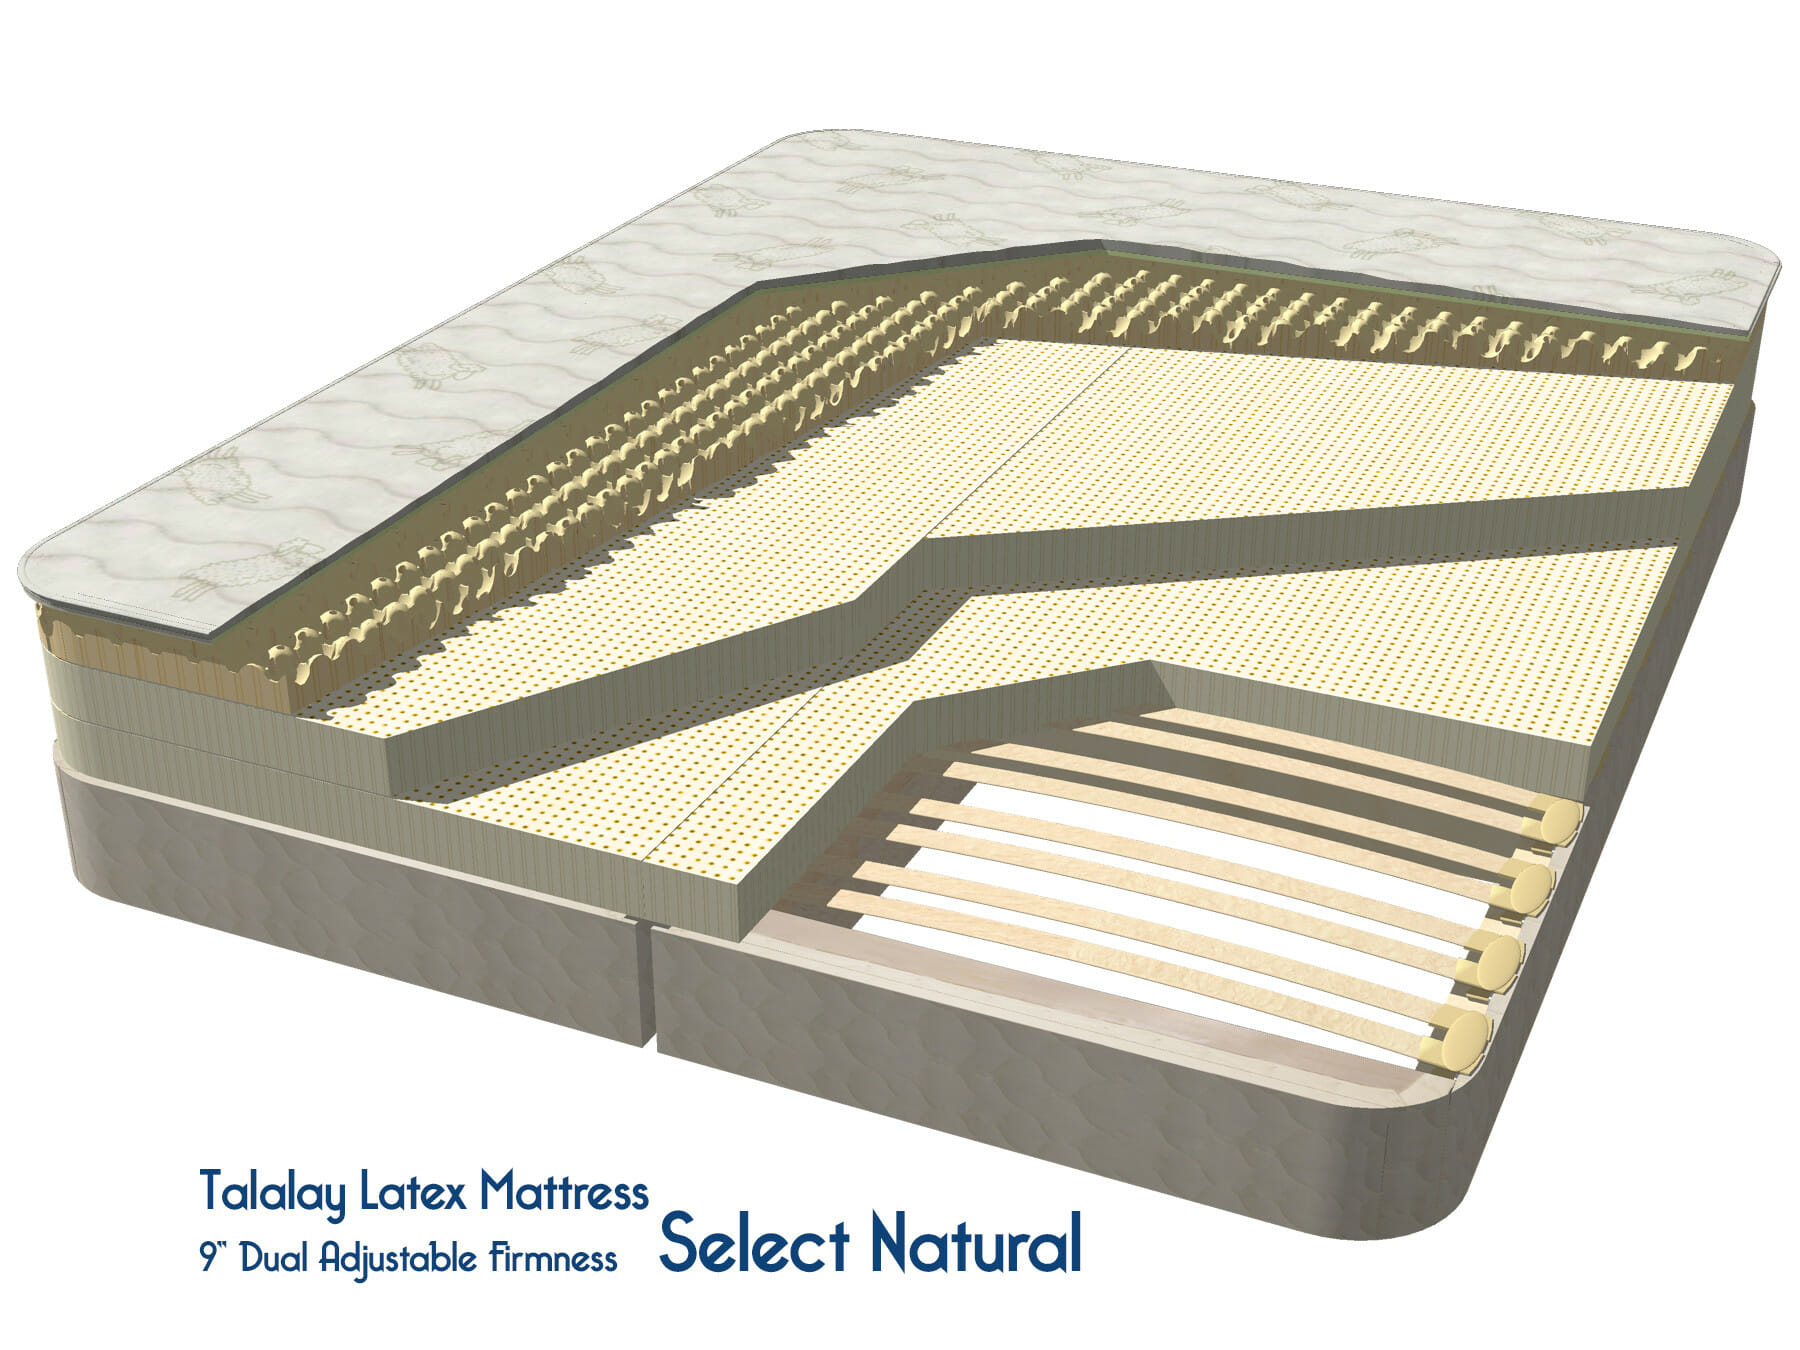 Select Natural Latex Mattress